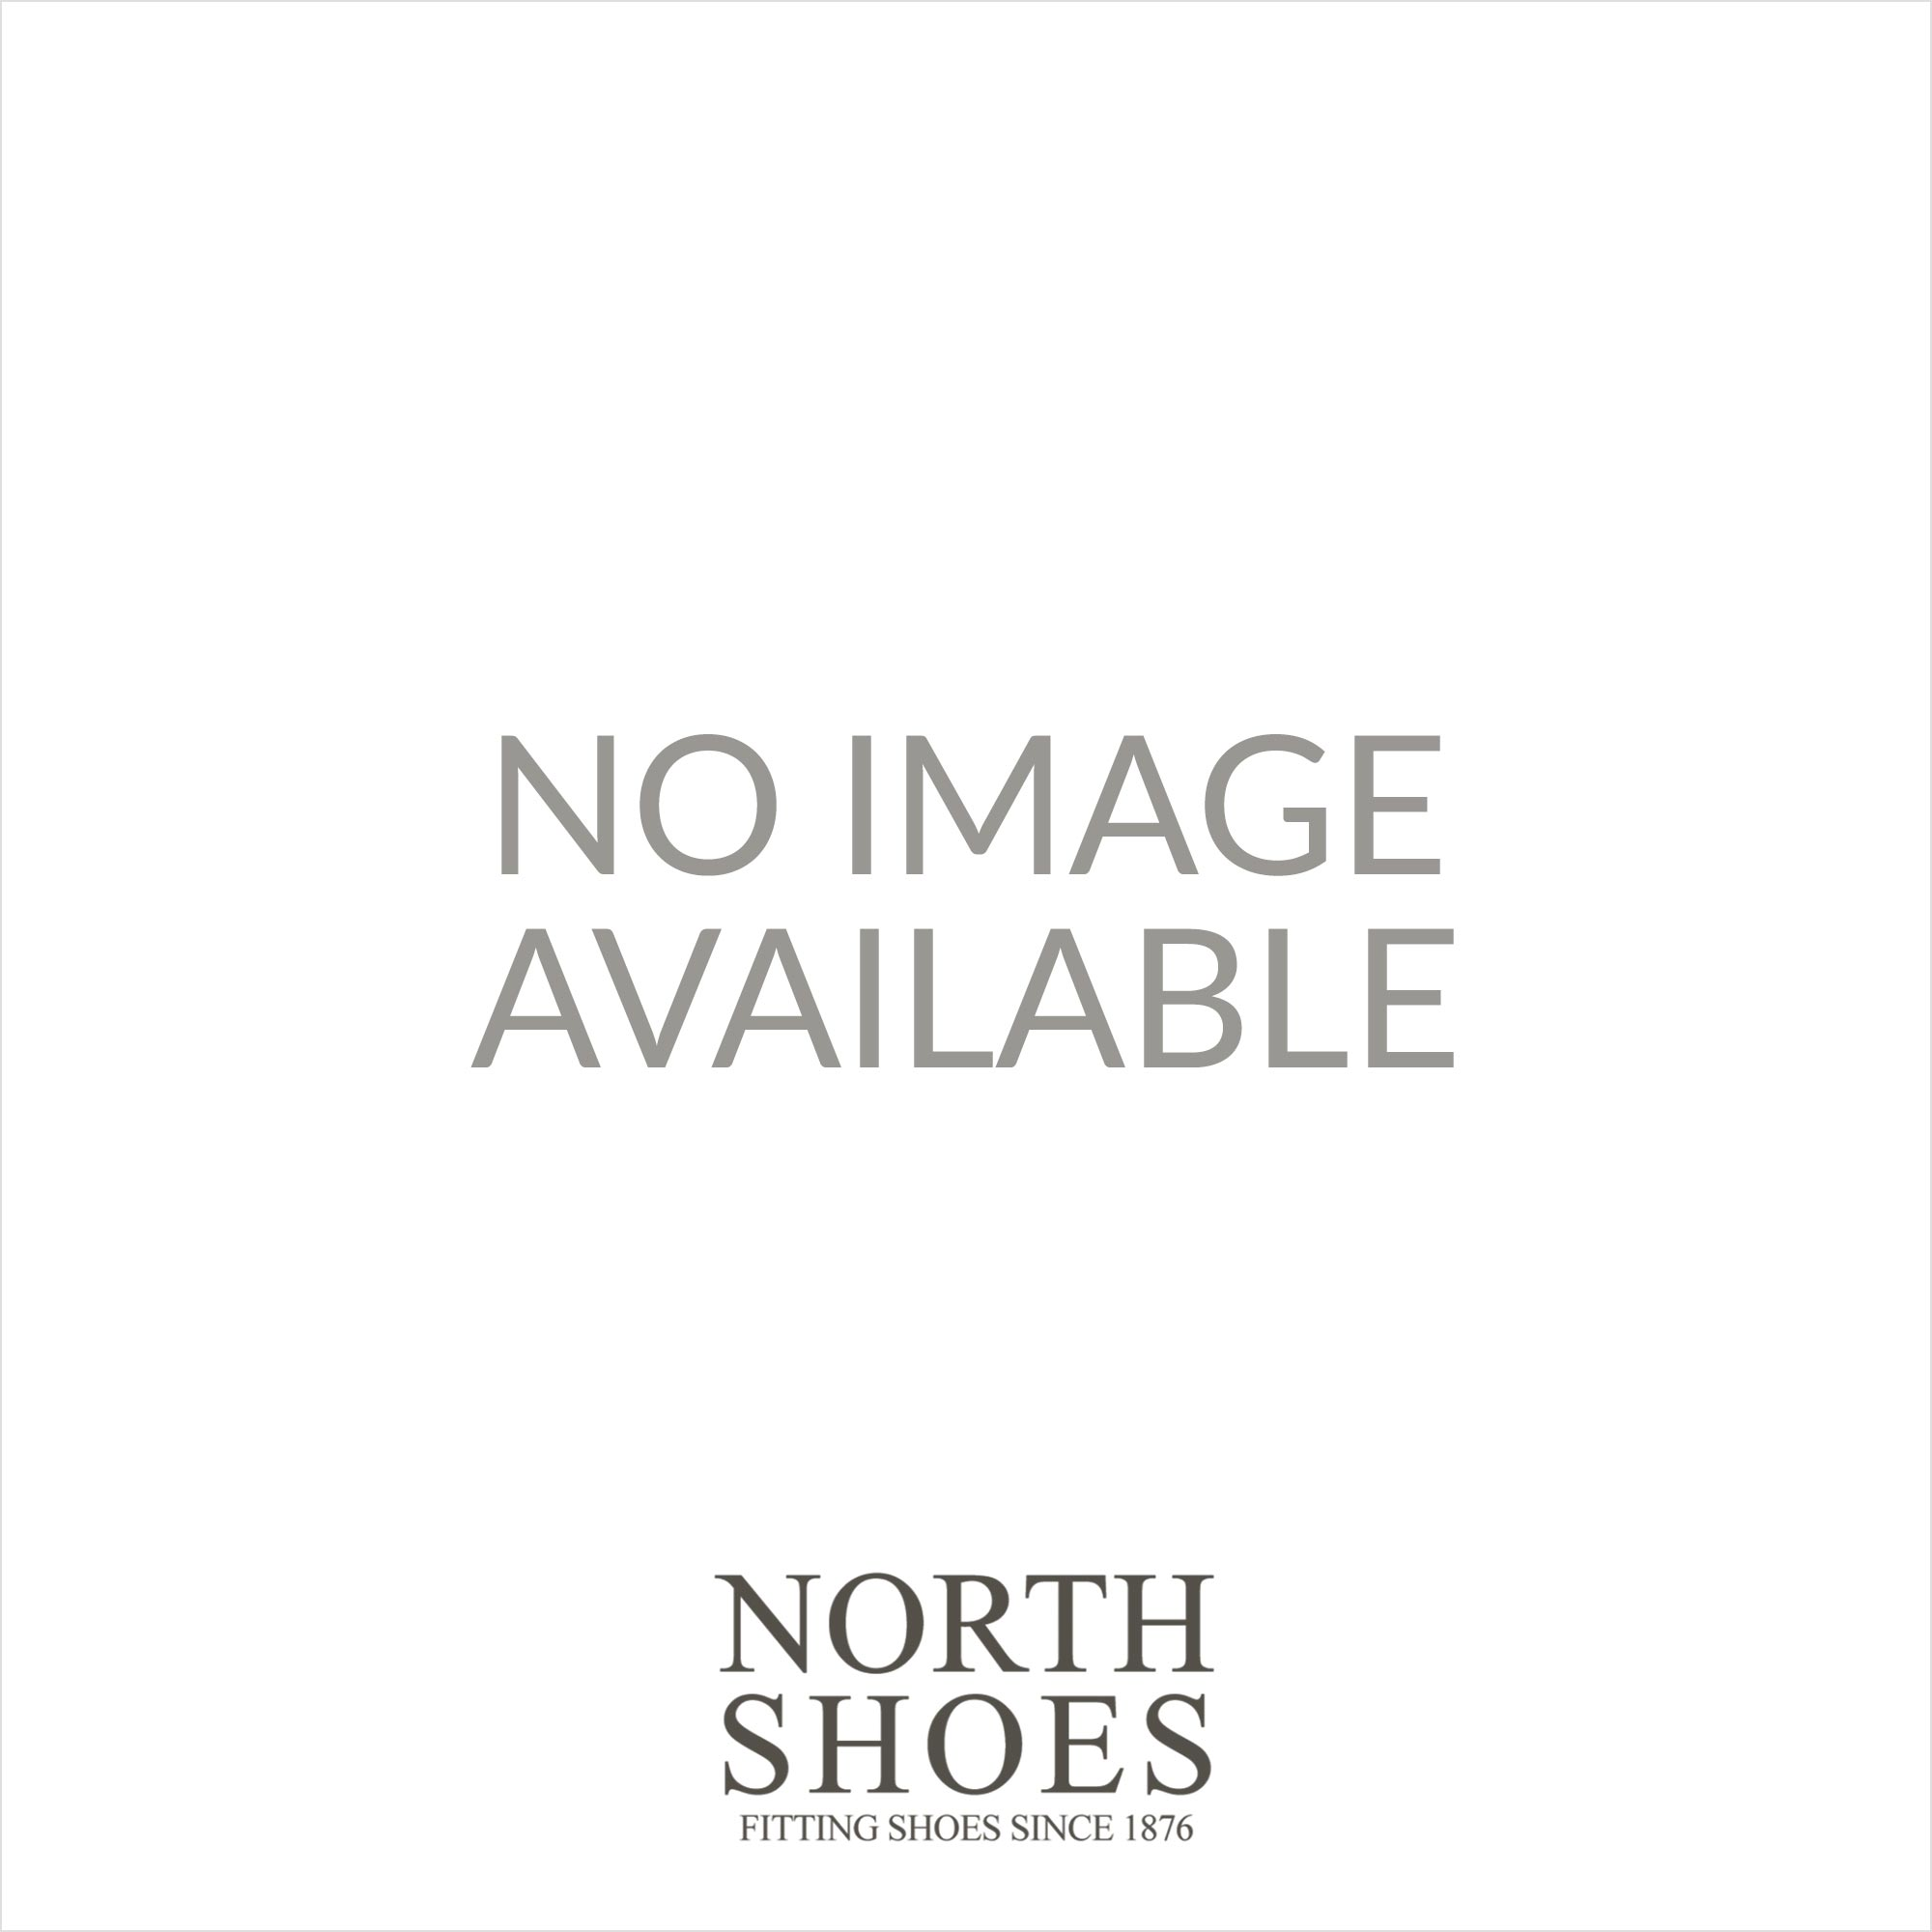 da812619d9a4e2 Clarks Festival Glory Aqua Patent Leather Womens Mary Jane Shoe - Clarks  from North Shoes UK